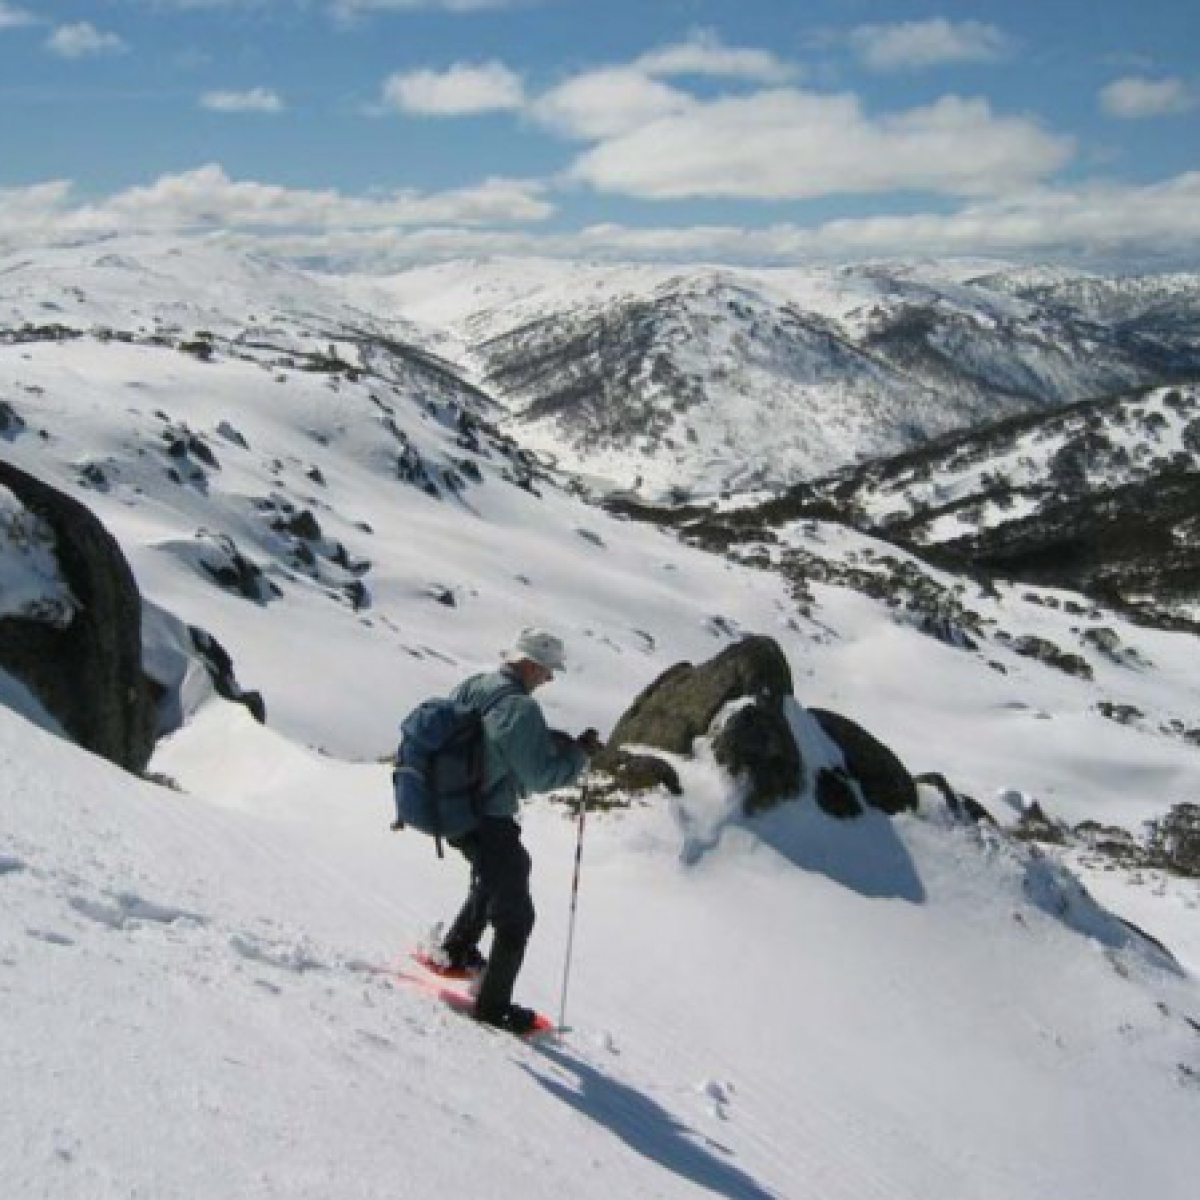 Brian desending The Paralyser, Kosciuszko National Park